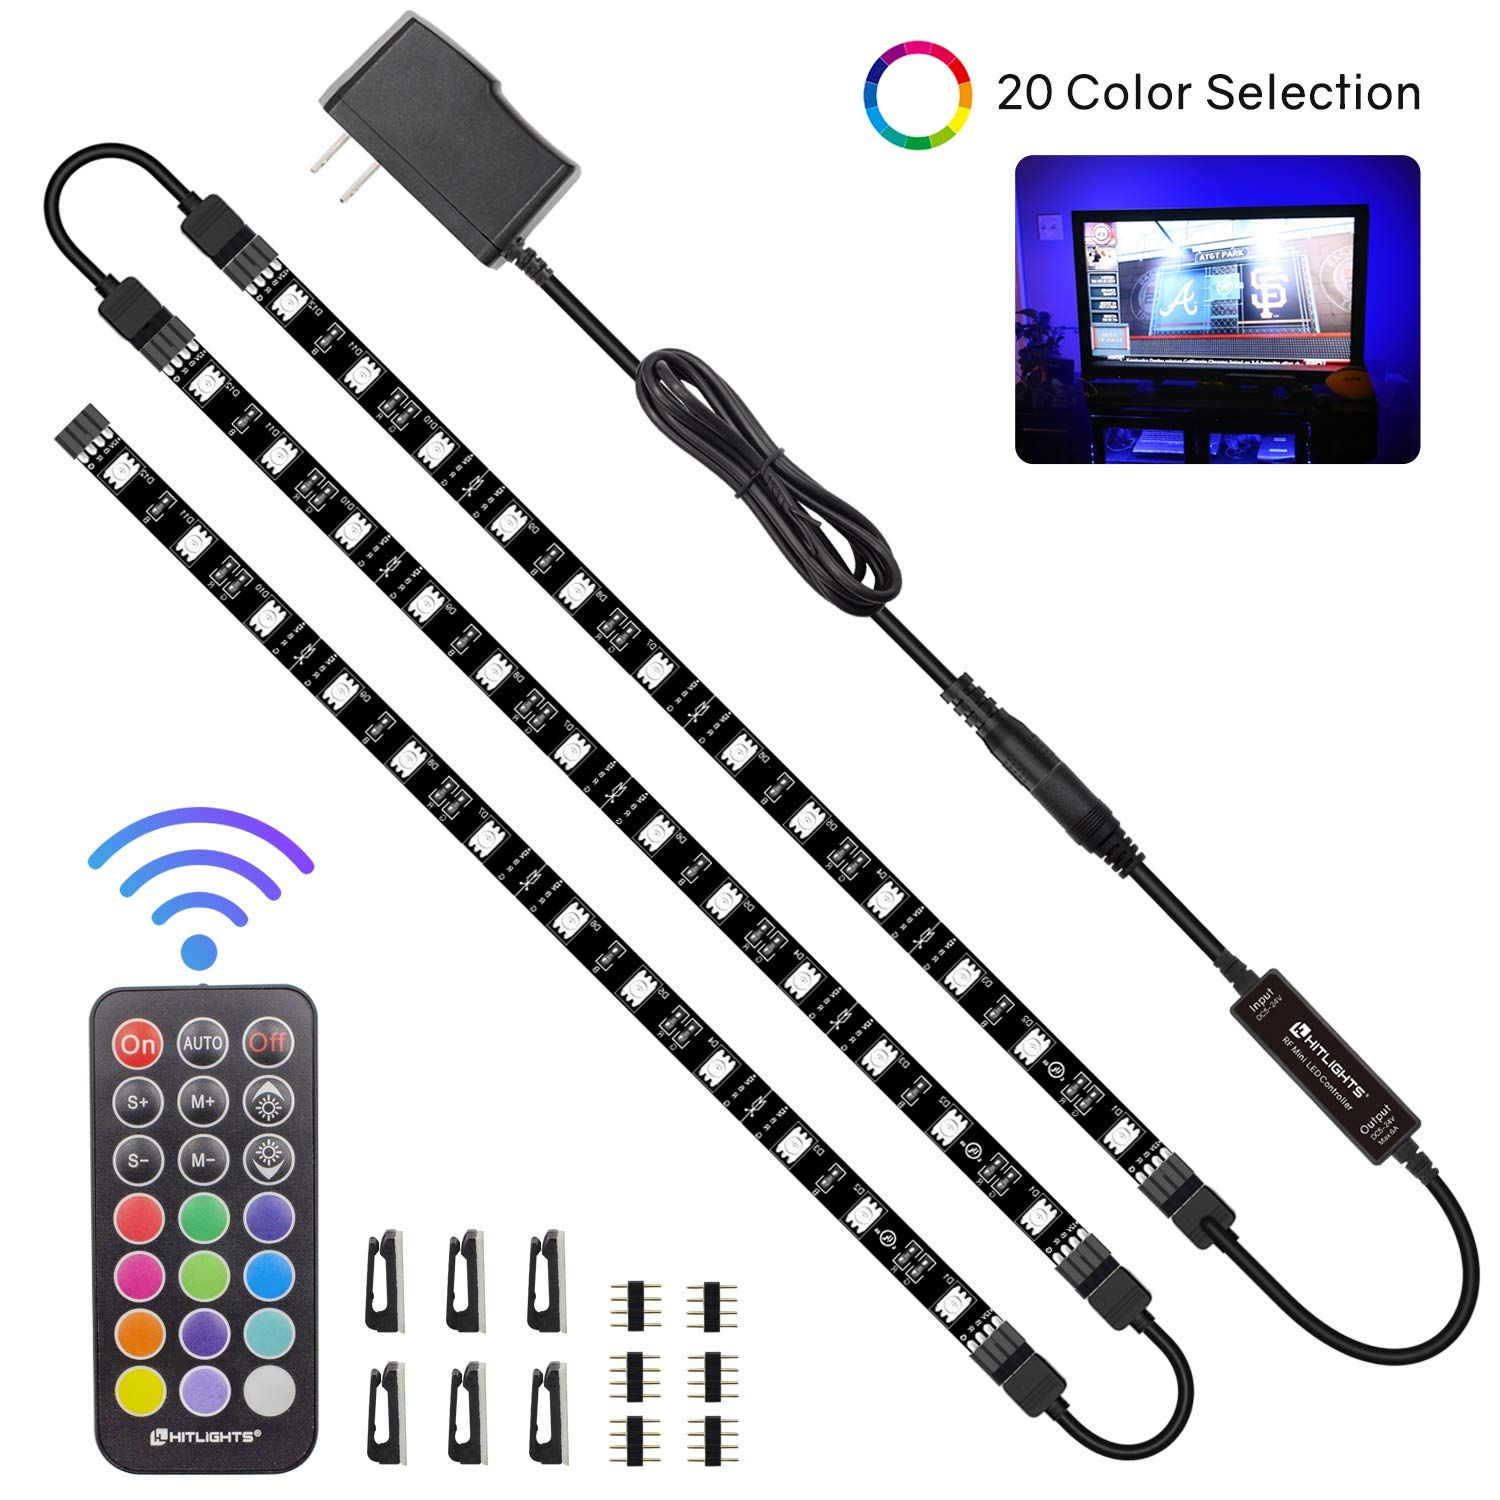 Led Strip Lights Hitlights 3 Pr Led Strip Lighting Led Light Strips Strip Lighting